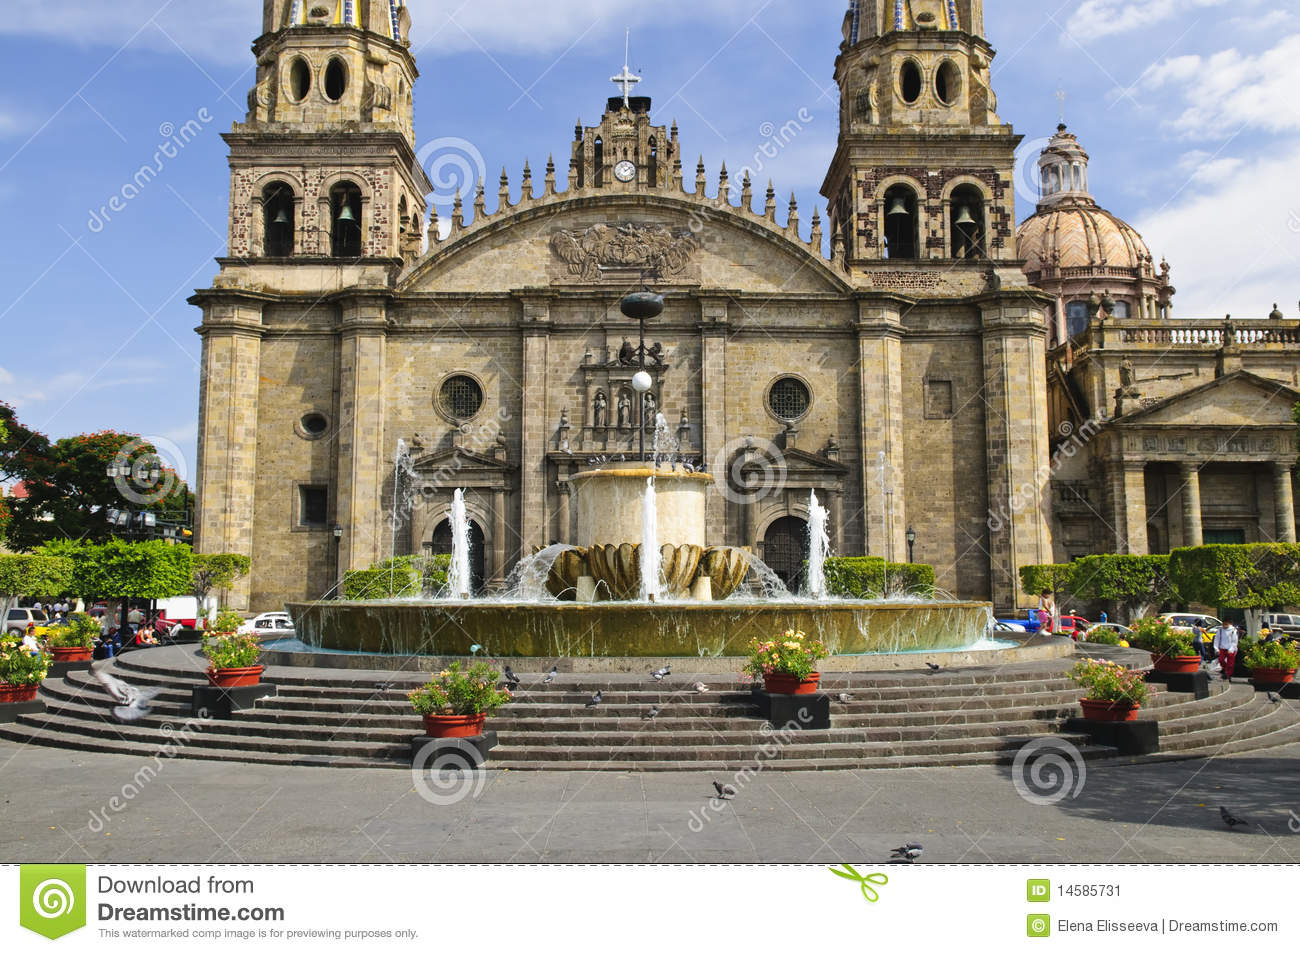 Download Guadalajara Cathedral In Jalisco, Mexico Stock Image - Image of exterior, entrance: 14585731